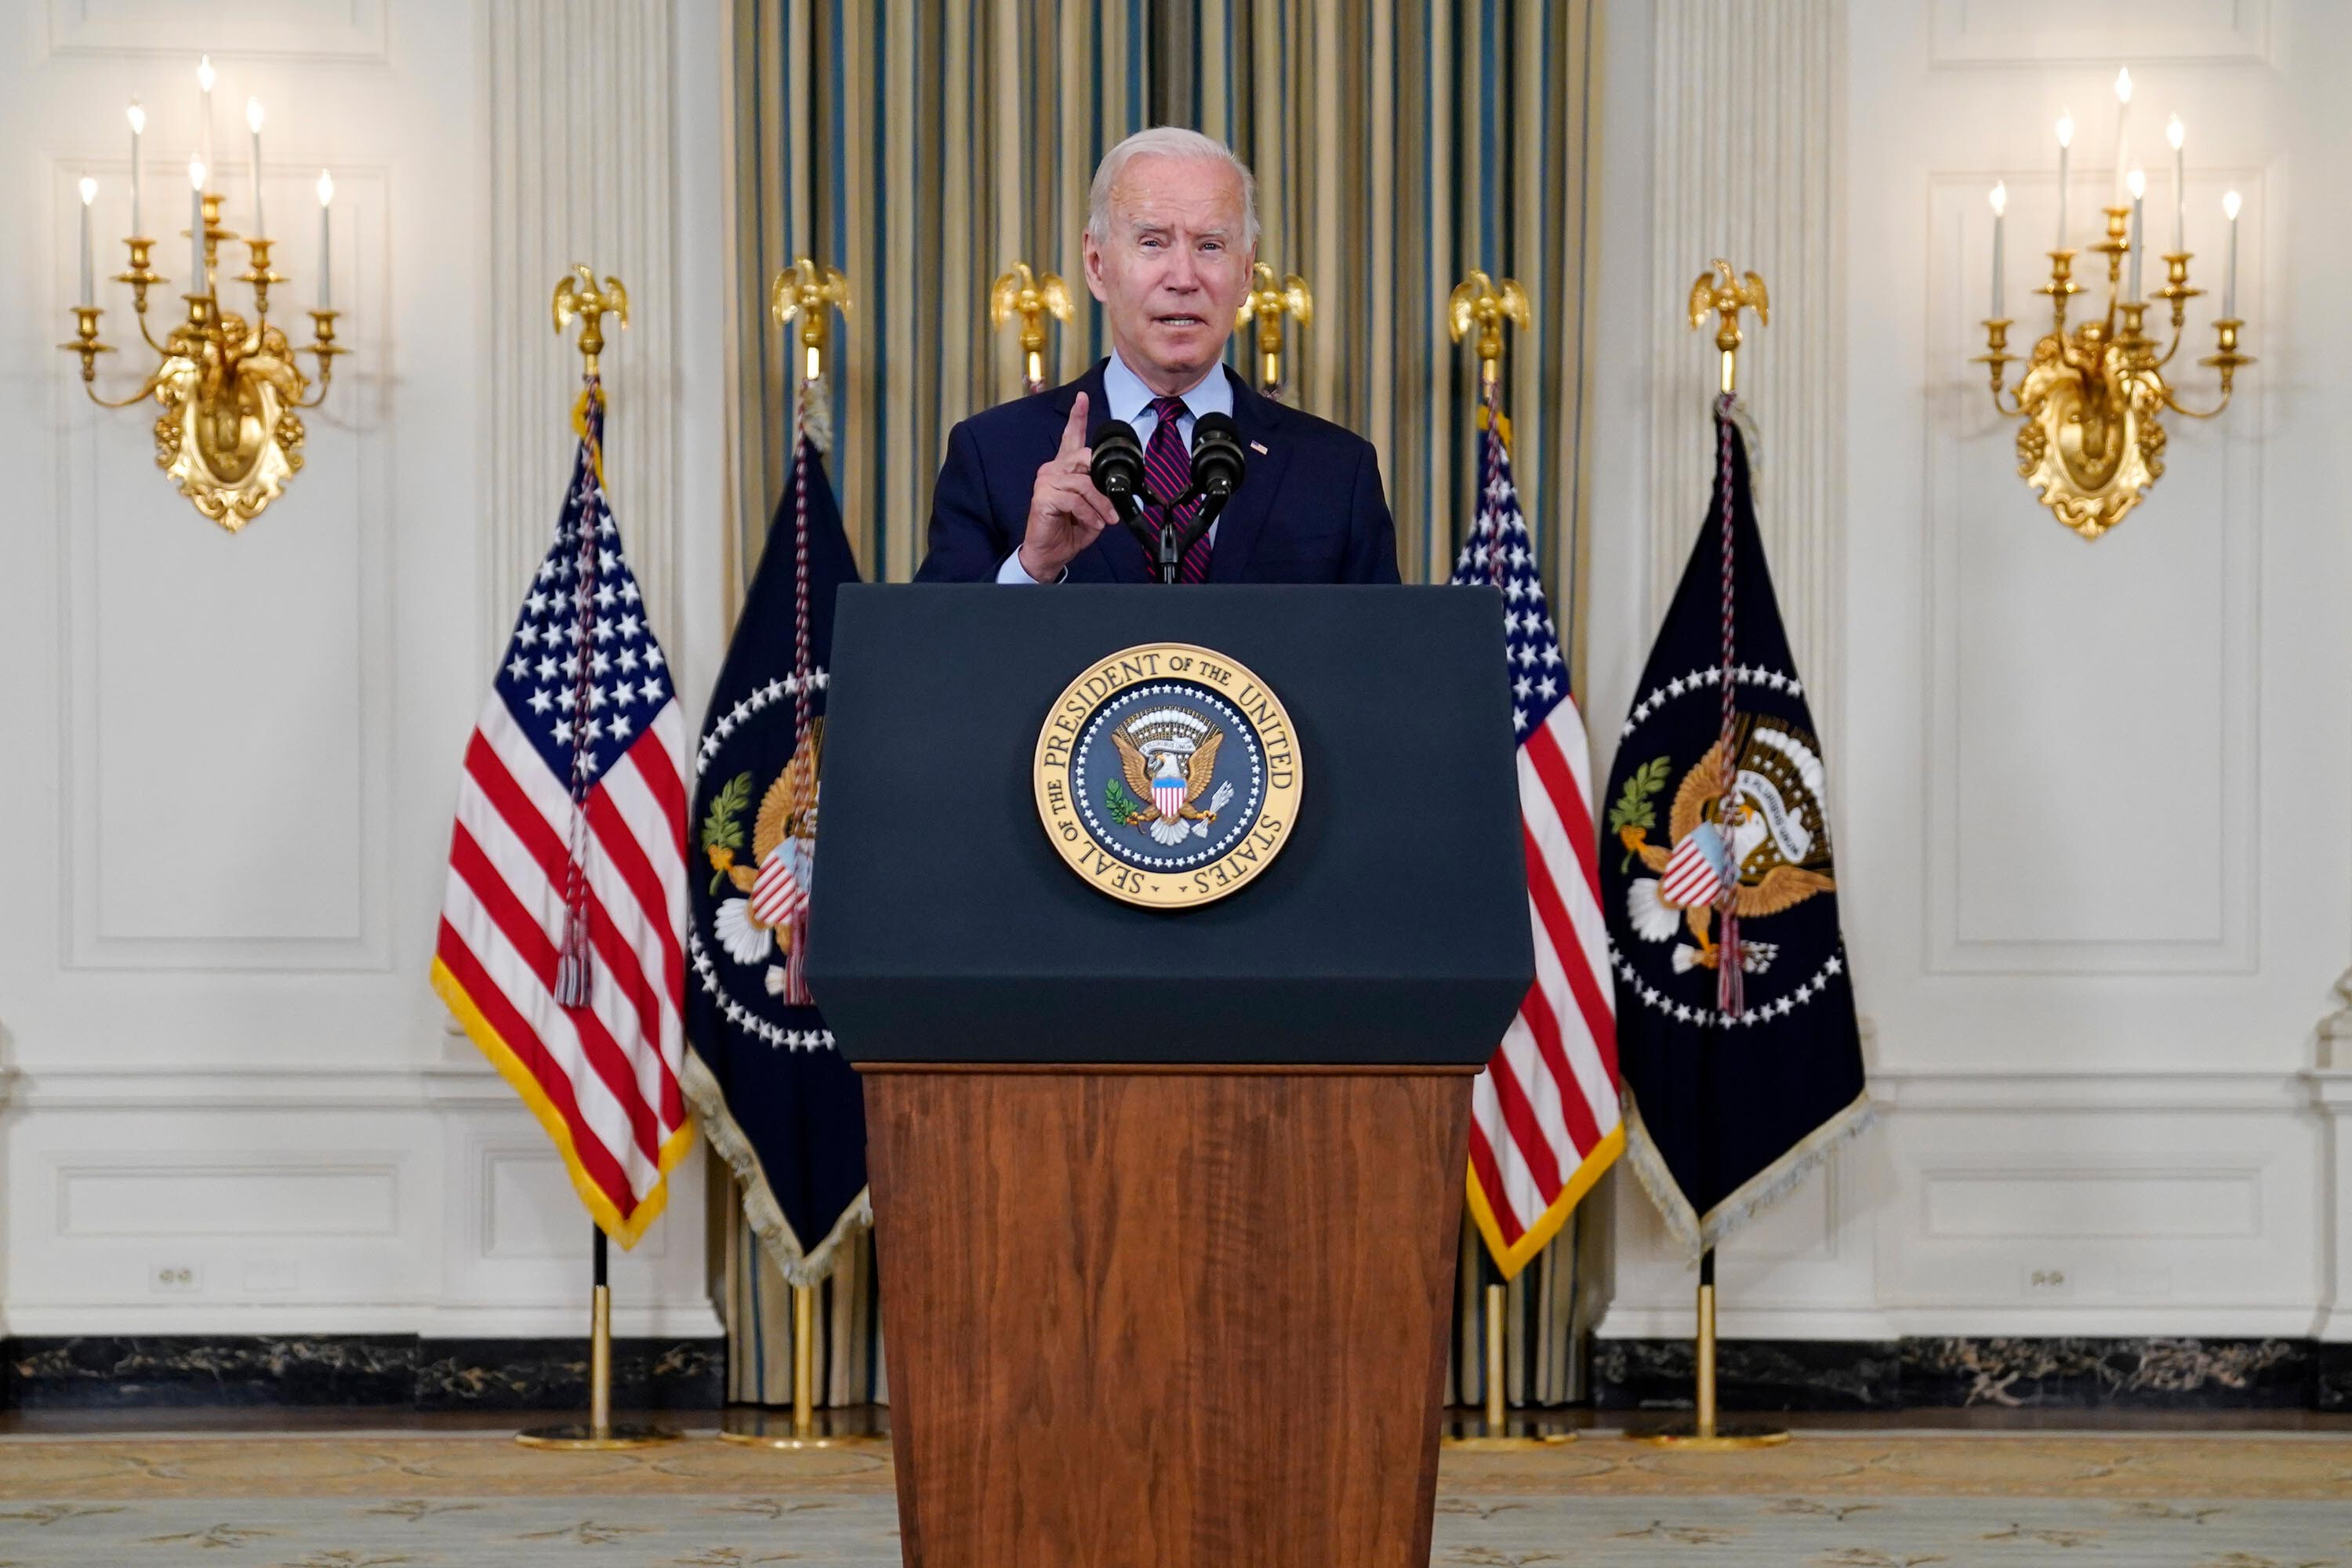 Biden becomes first president to issue proclamation marking Indigenous Peoples' Day